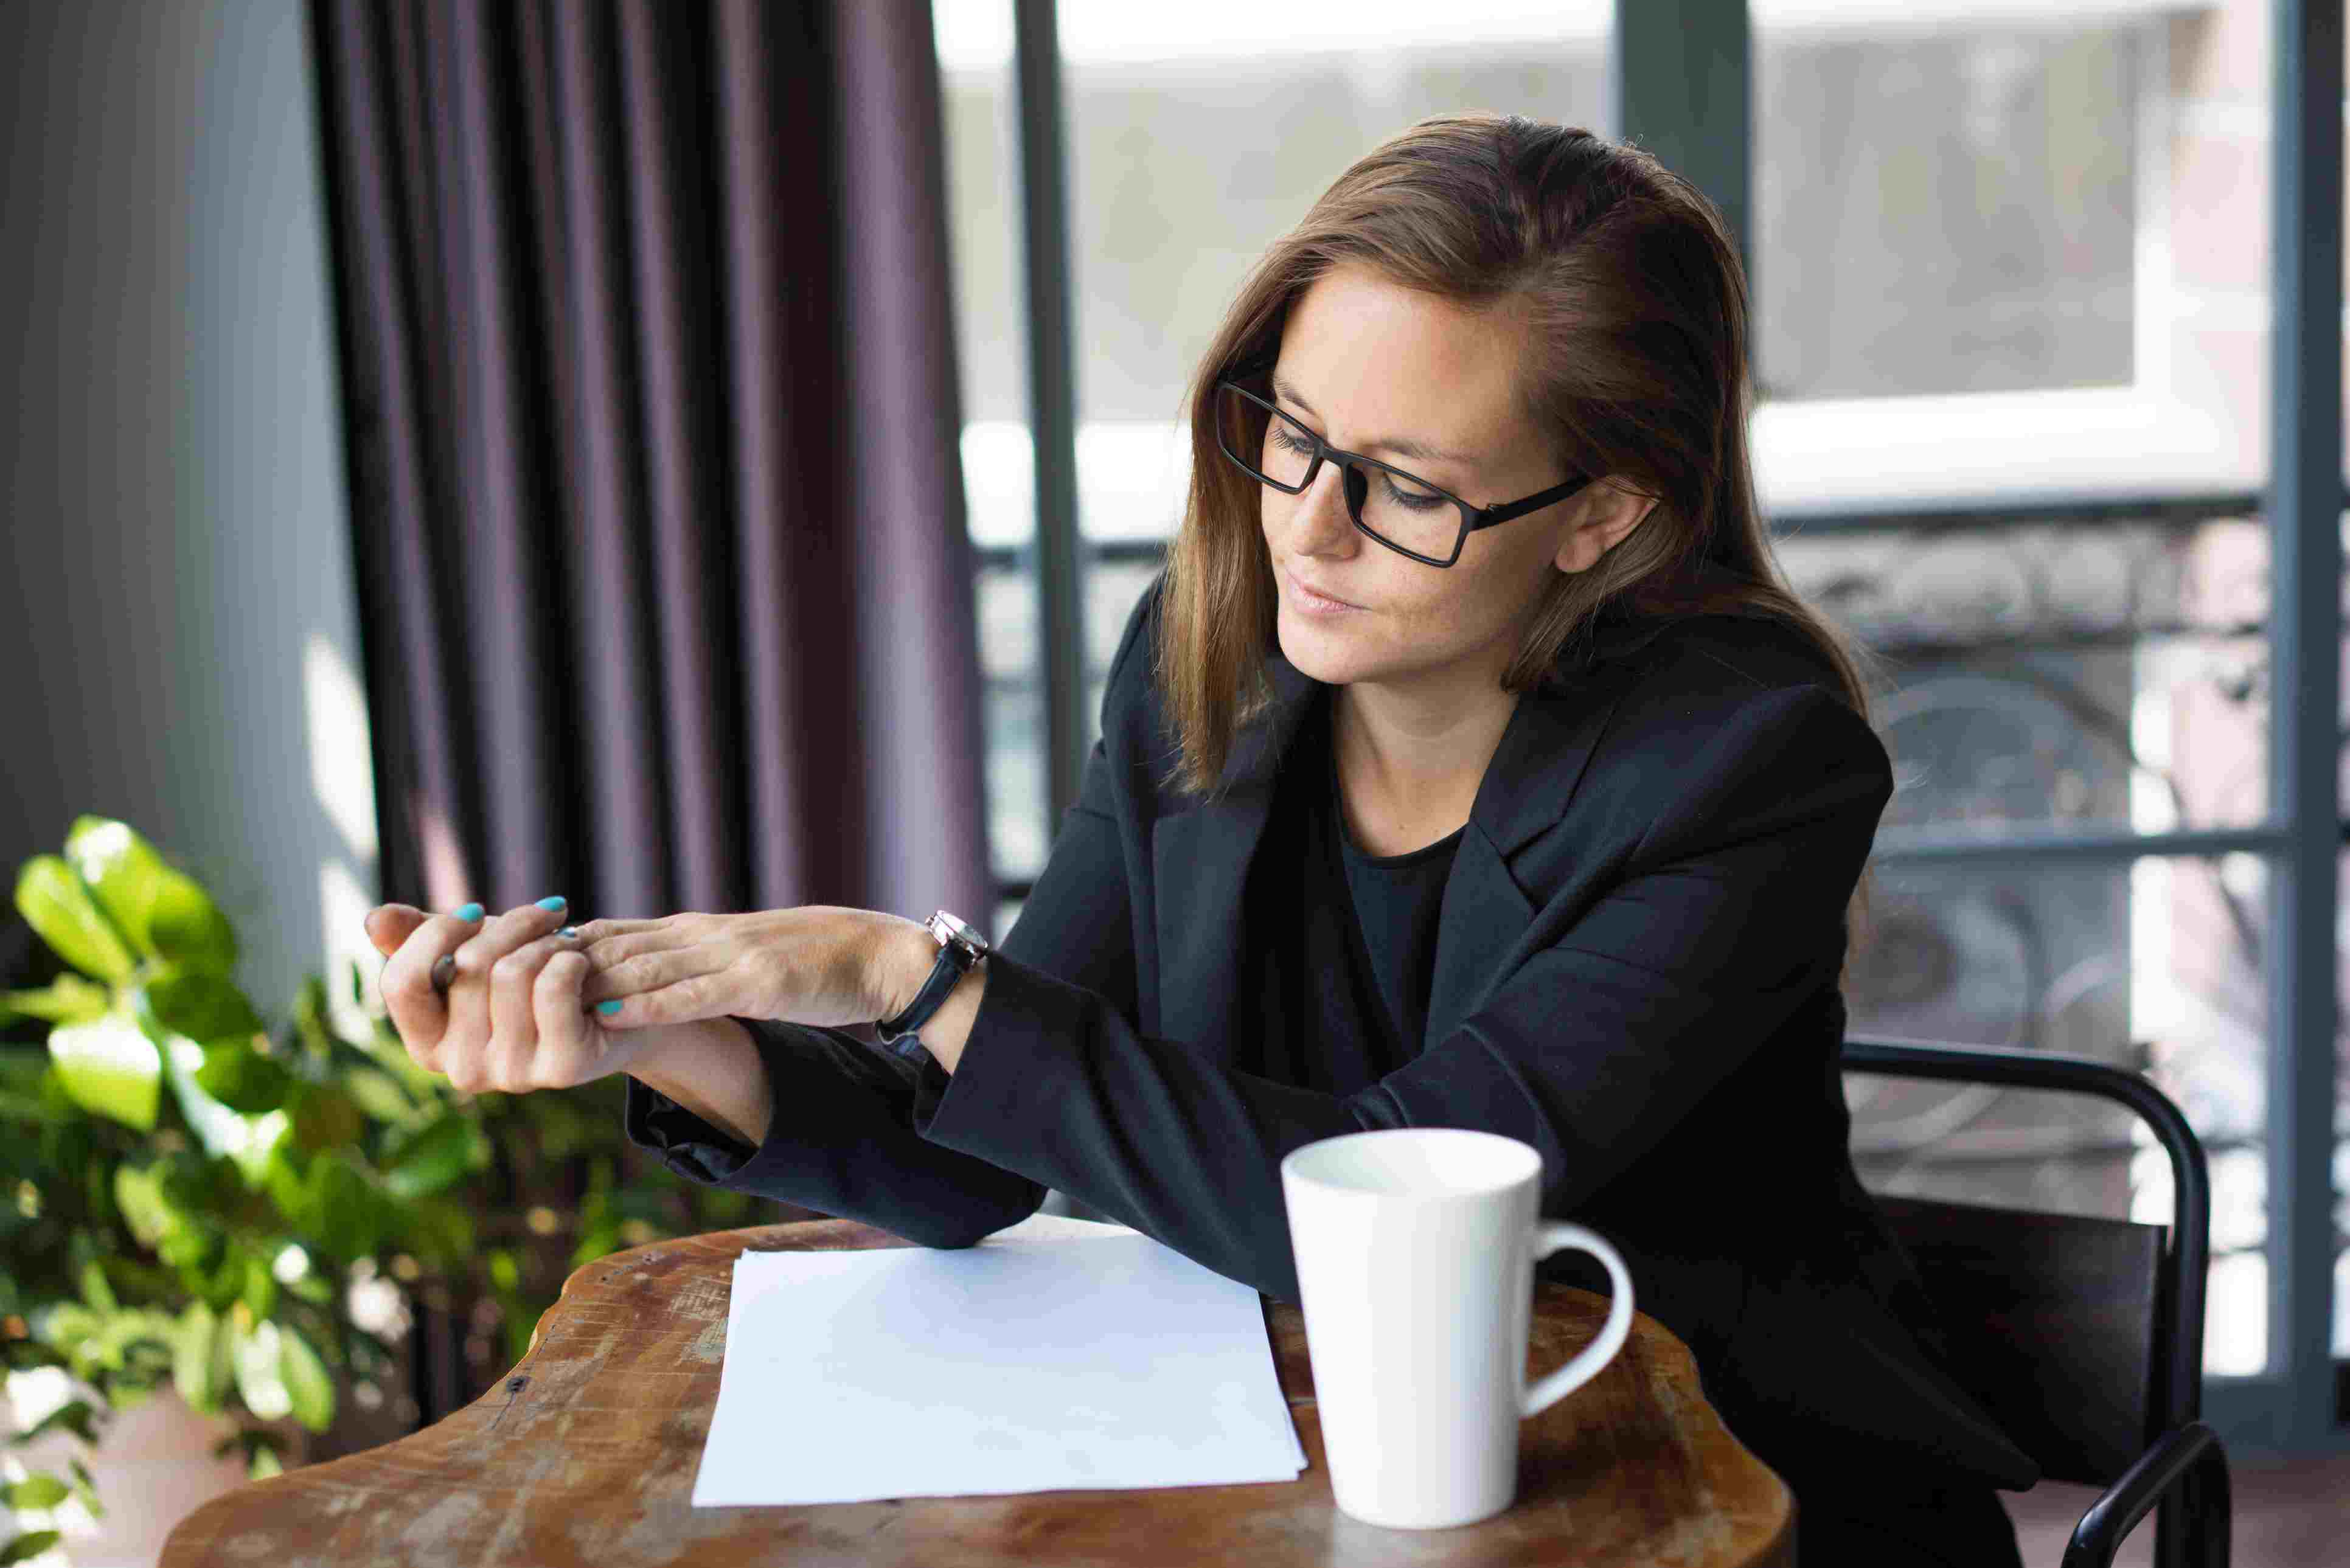 Serious Business Woman Checking Time in Cafe